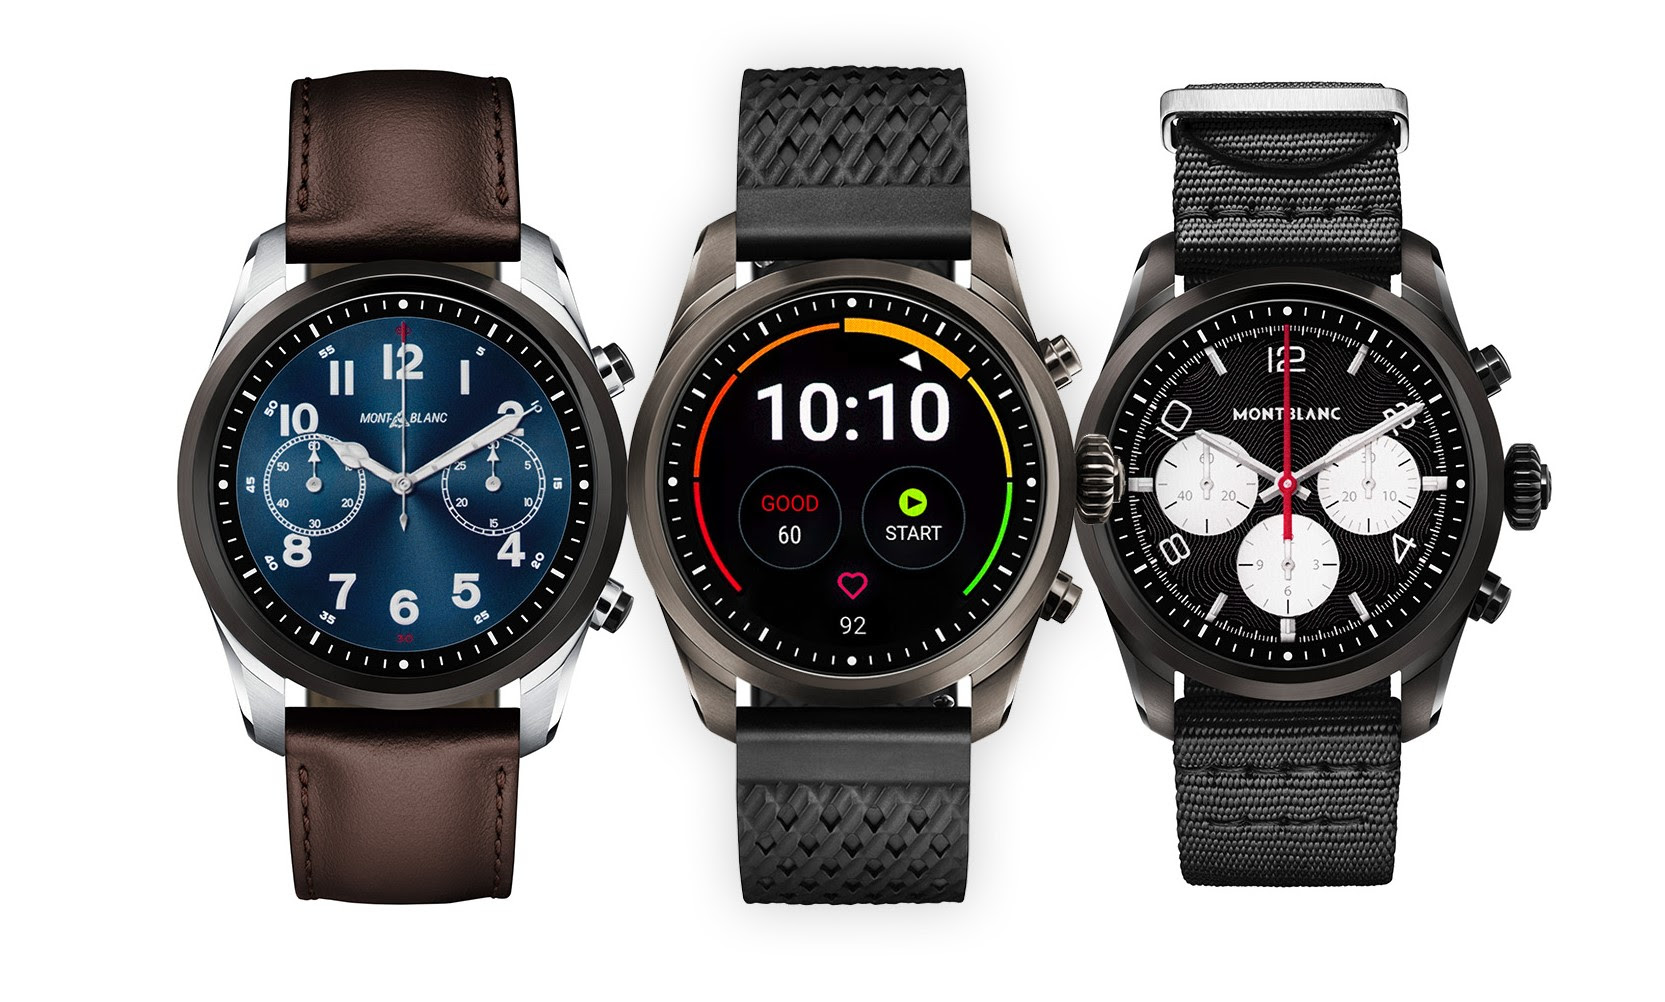 The first Wear OS smartwatch with Snapdragon Wear 3100 goes